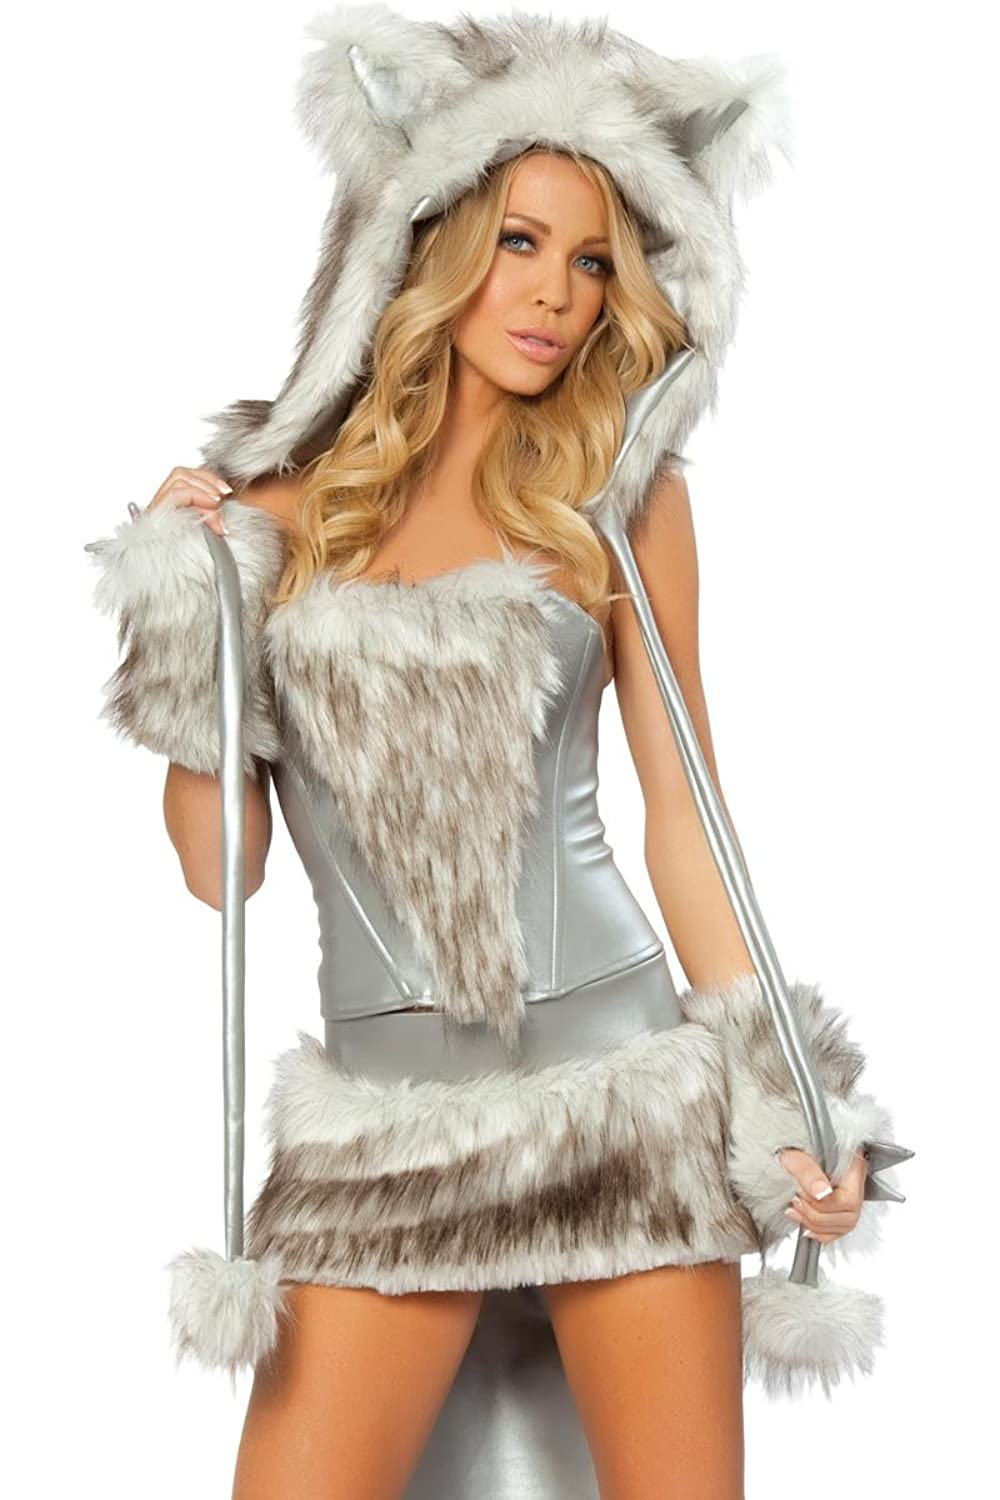 Women's Sexy Lil Wolf Costume 7 Piece Complete Set